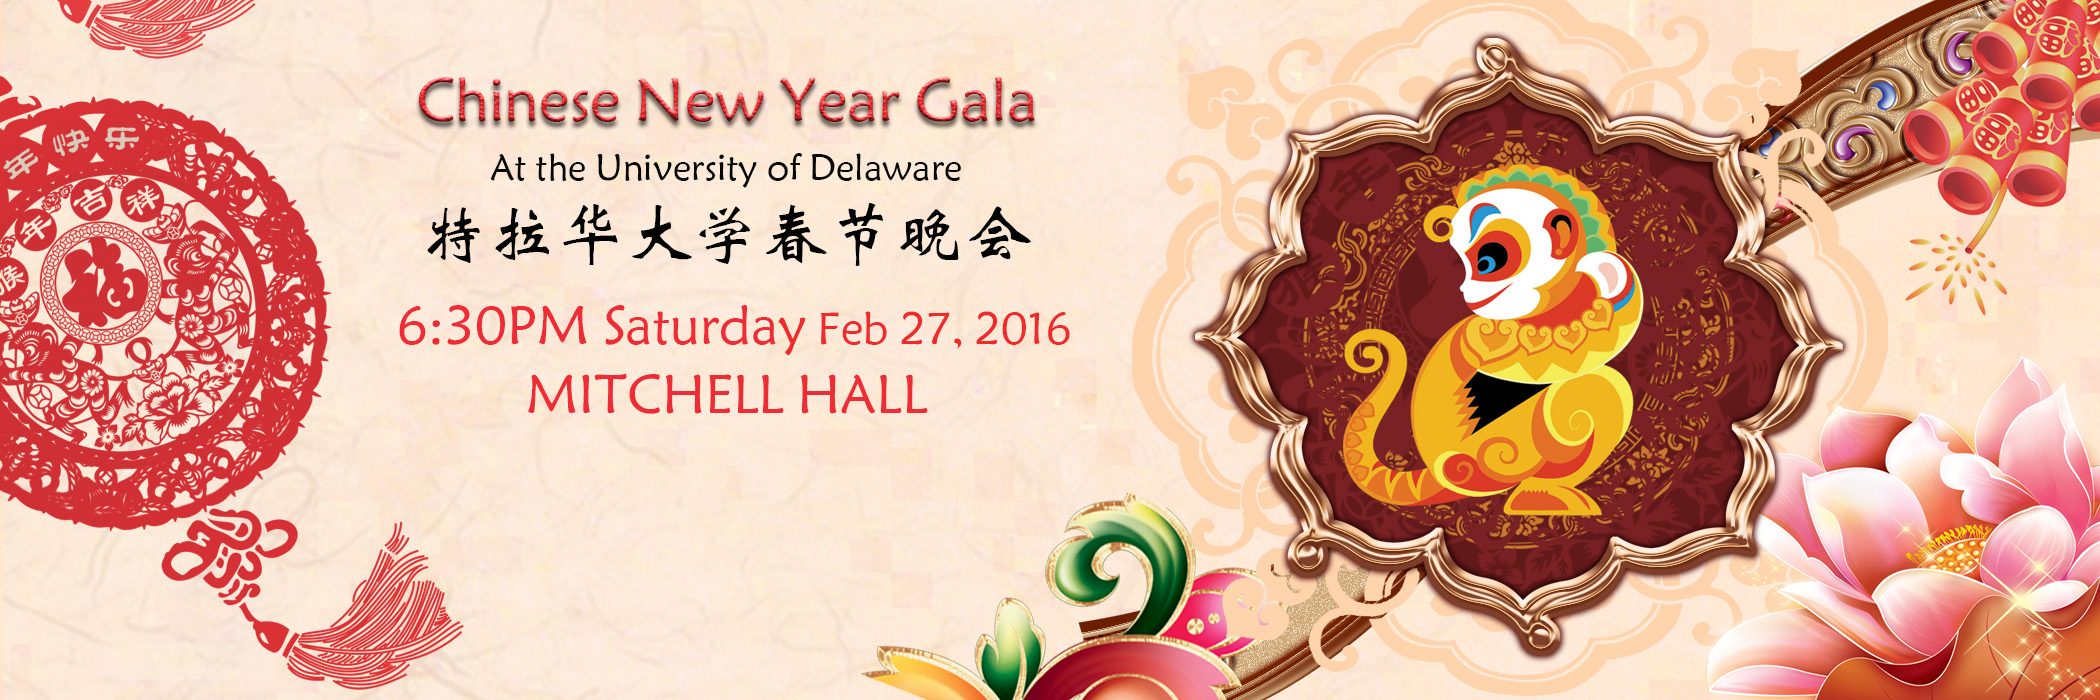 2016 UD Chinese New Year Gala